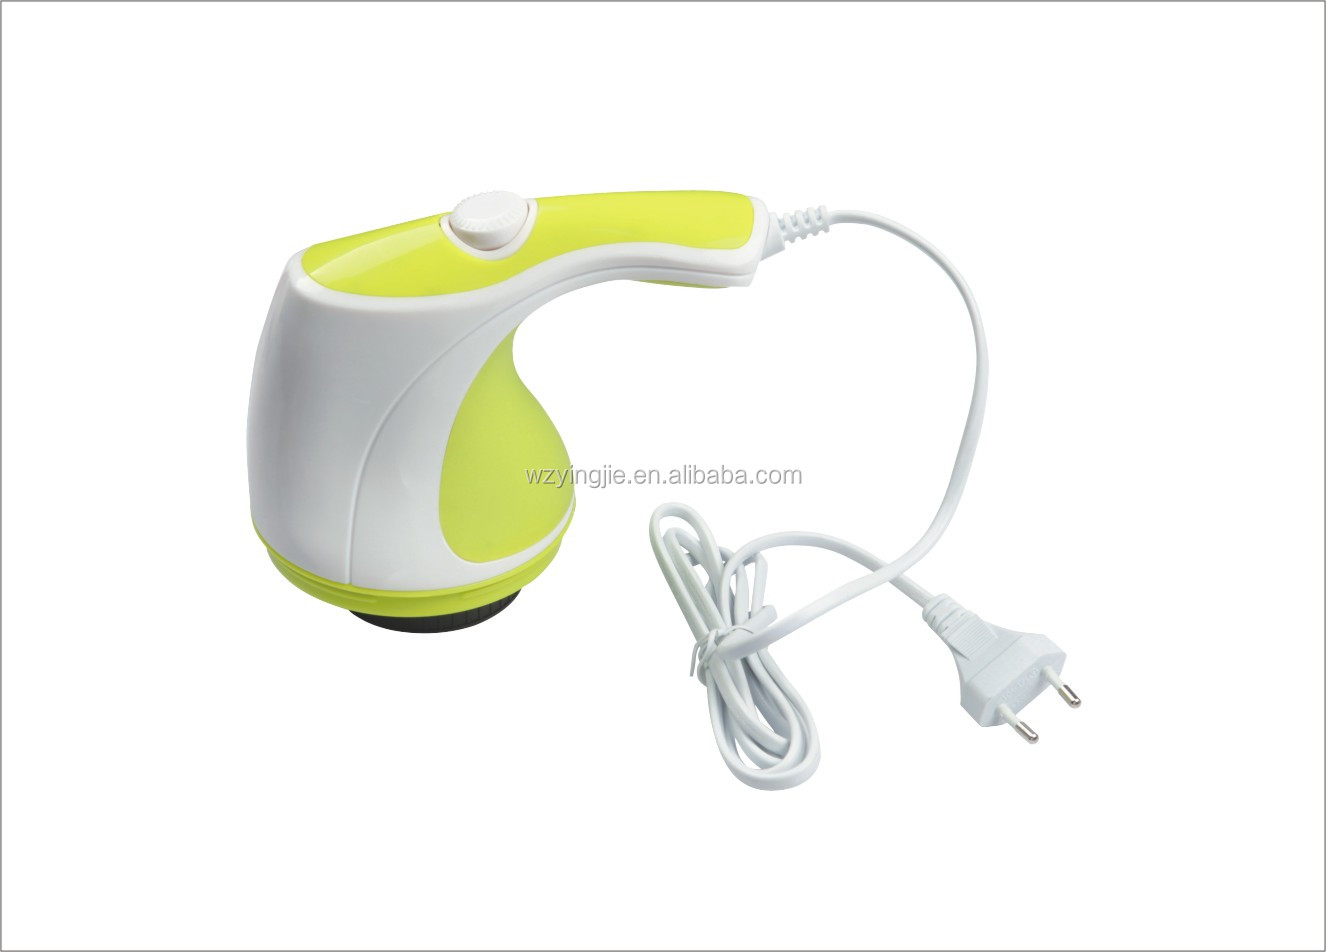 personal massager, massager products,relax and vibro tone massager with CE ROHS certificate